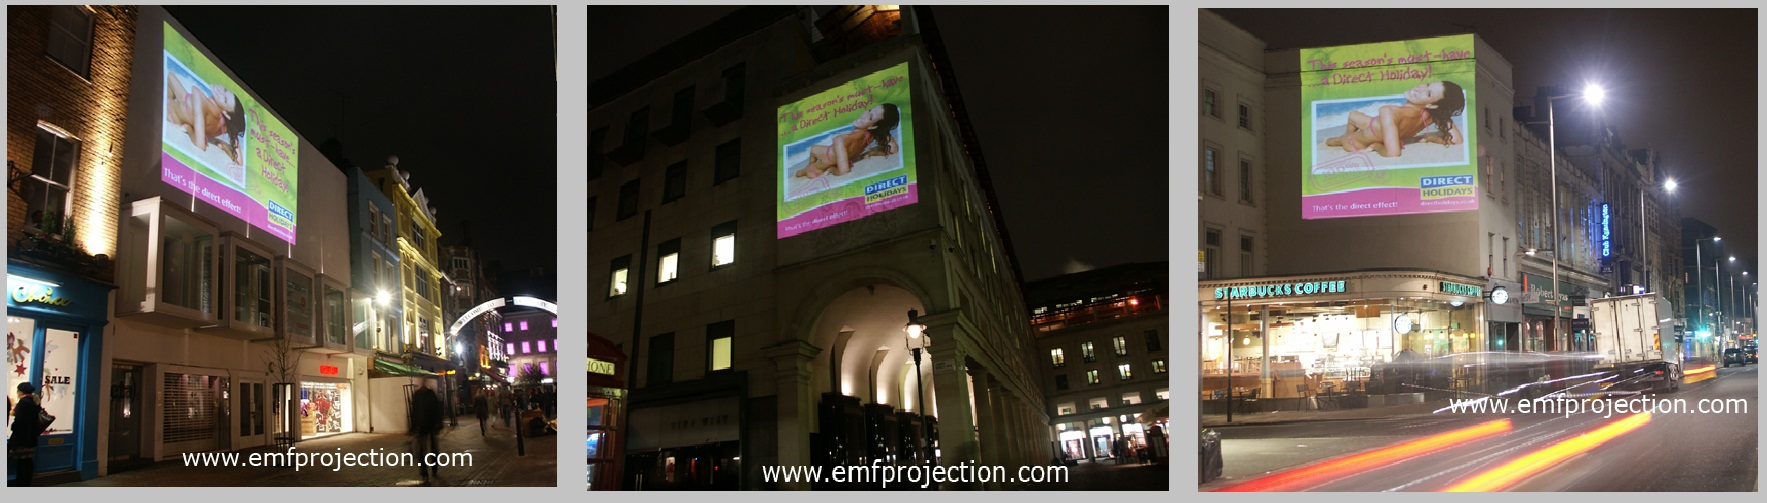 Advertising Building Projection campaign -Direct Holidays